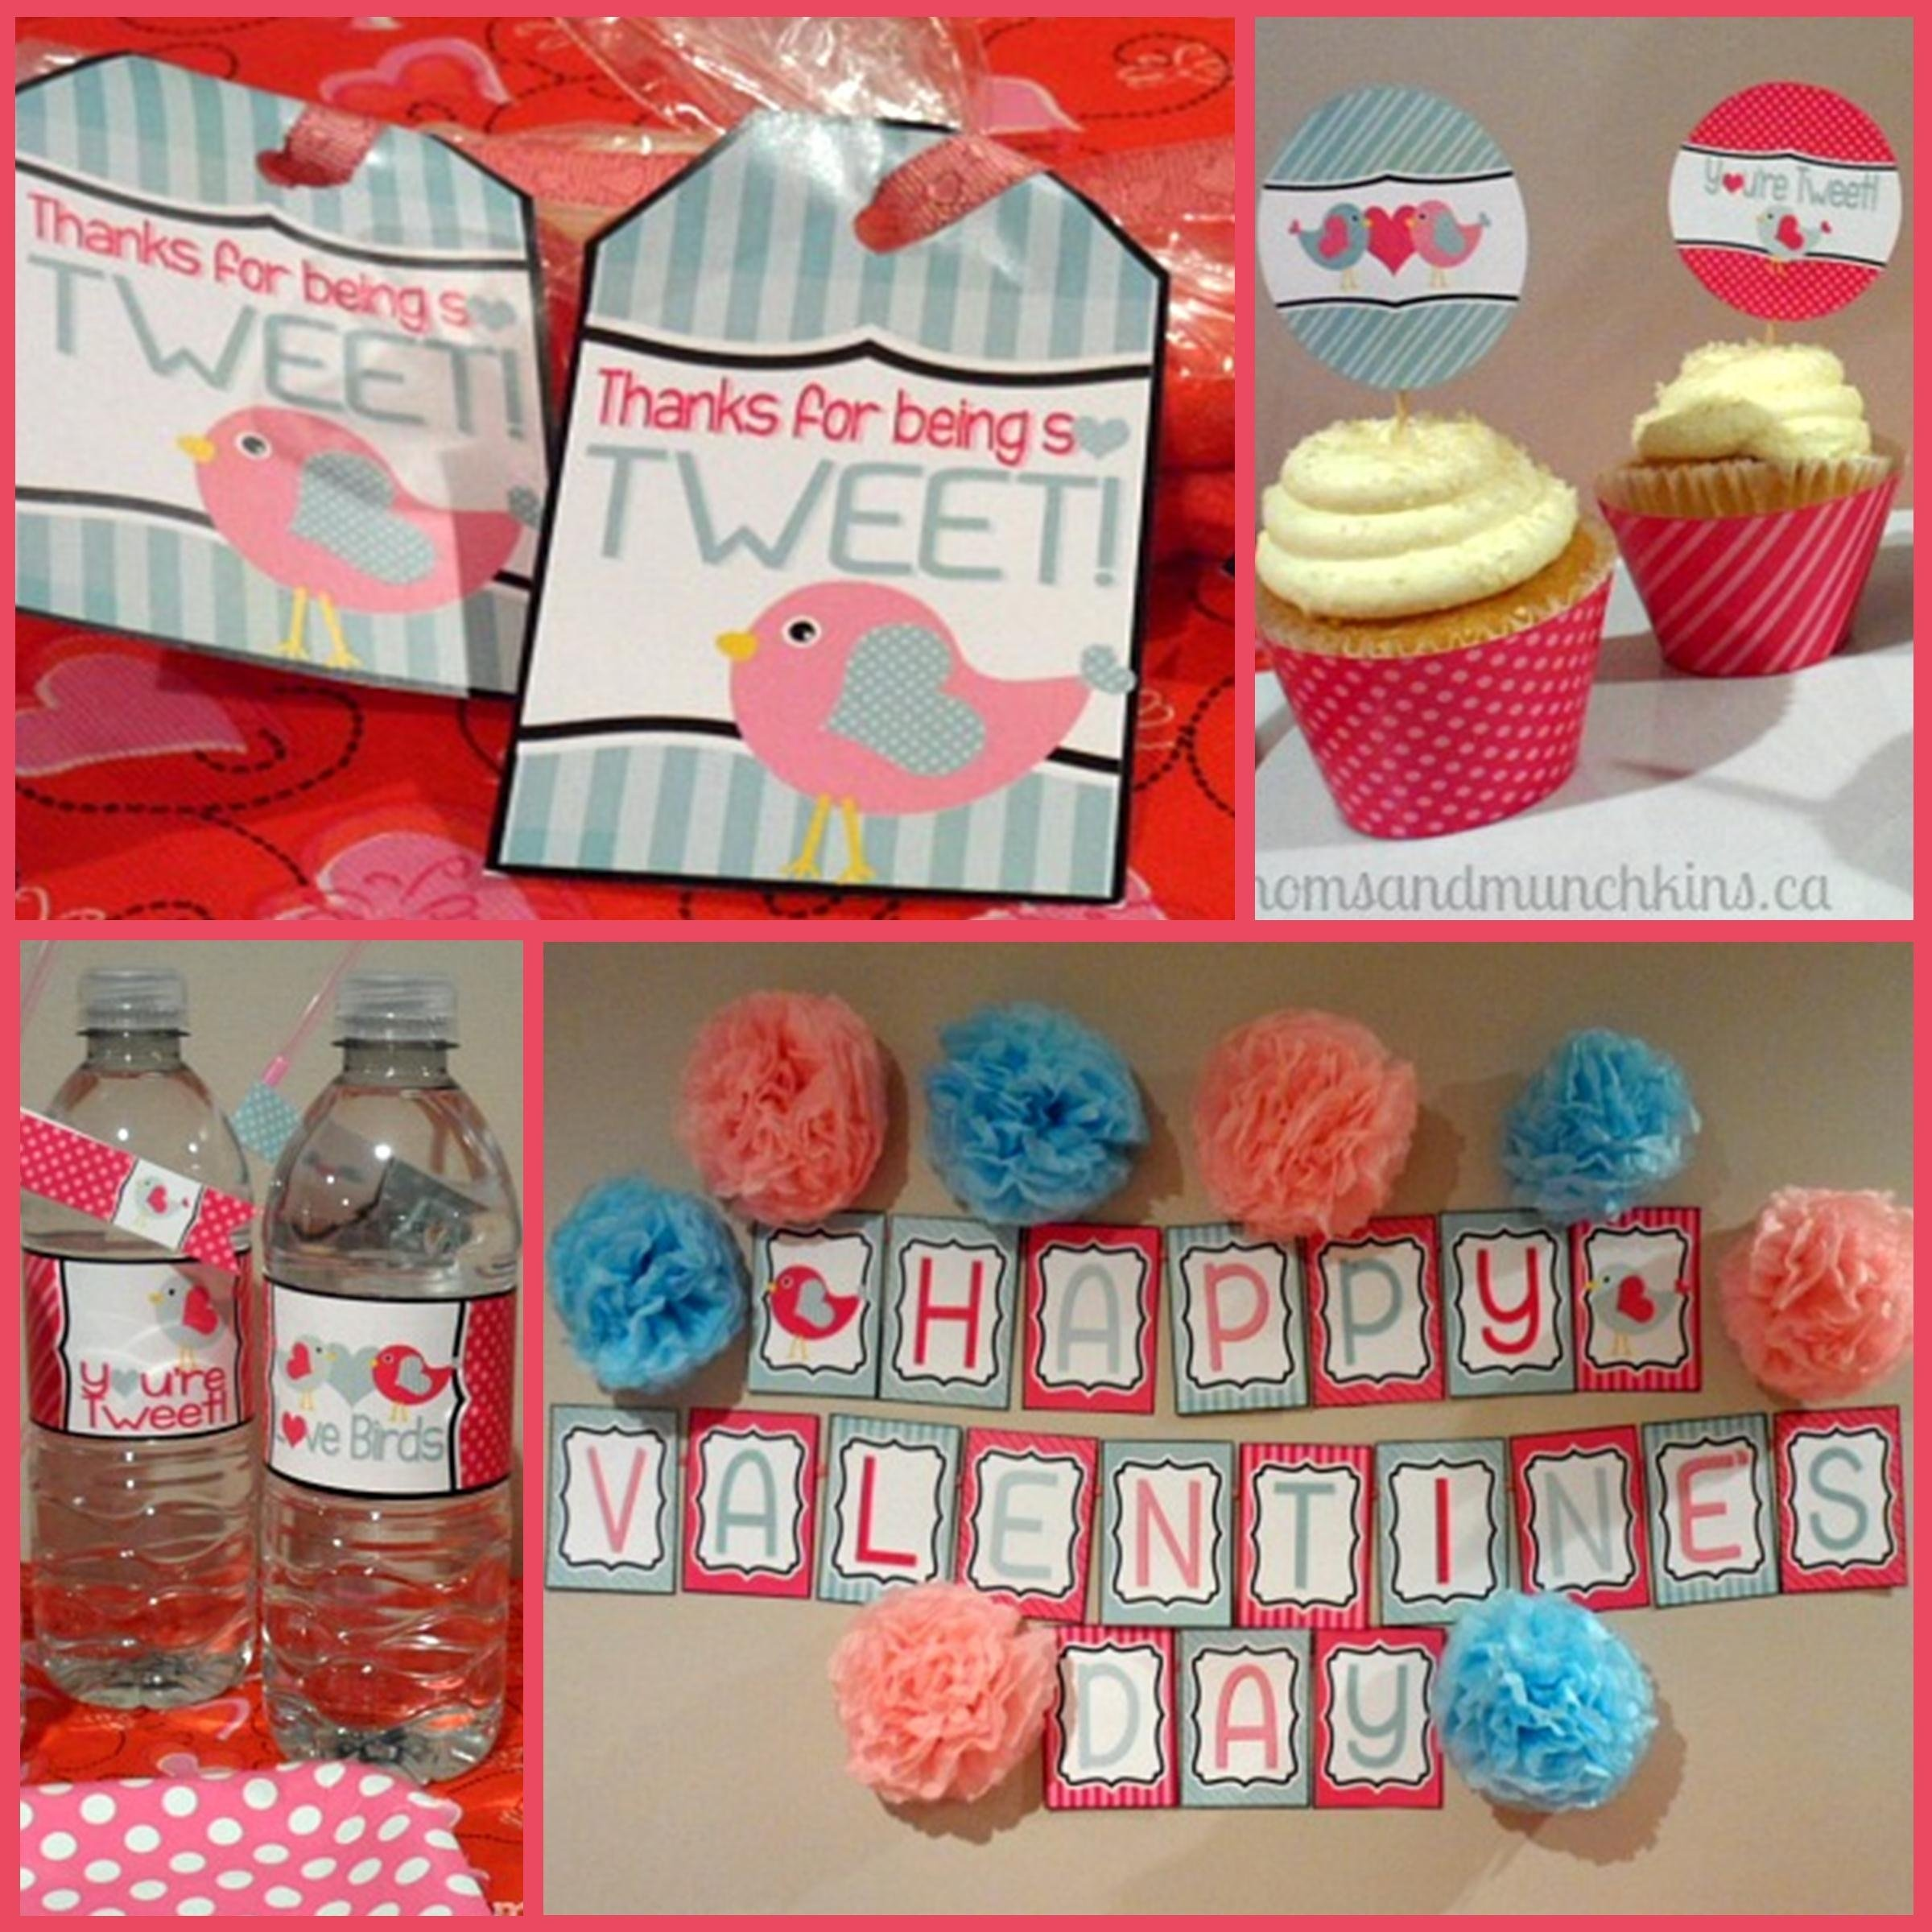 10 Unique Cute Valentines Day Ideas For Friends supple a boyfriend valentine day plus valentine ideas and a 2020